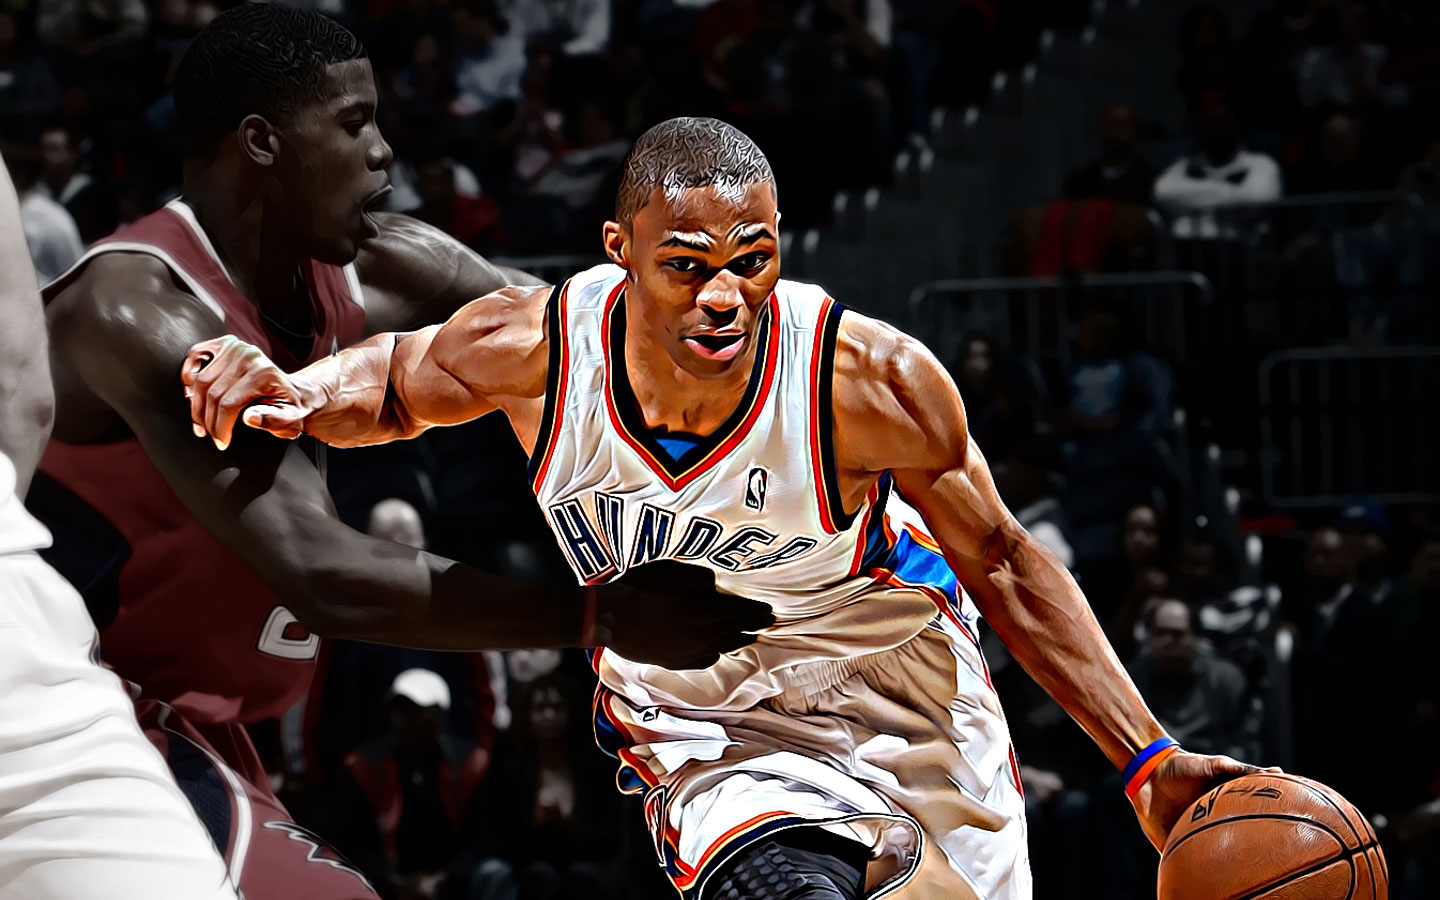 8 PSD Basketball Players Kevin Durant Wallpaper Images